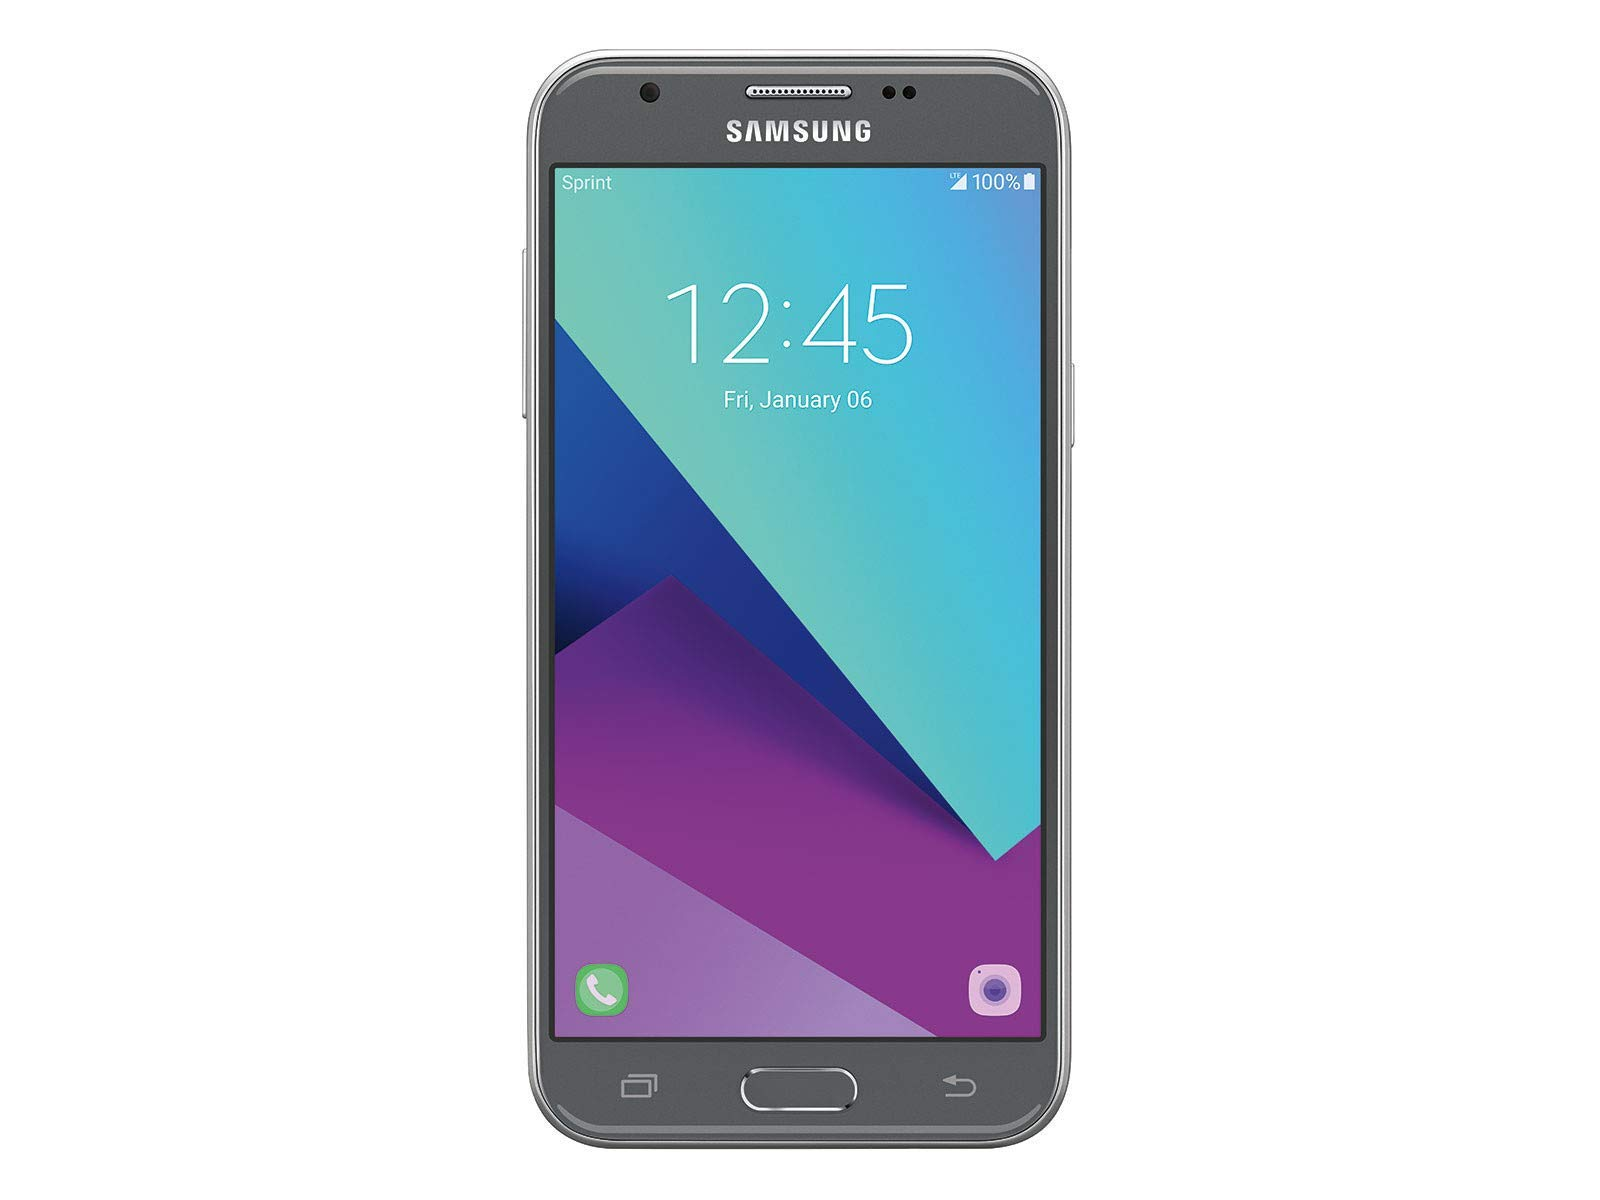 Samsung Galaxy Prime 16GB J327 J3 AT&T T-Mobile Unlocked Smartphone - Silver (Renewed) by Samsung